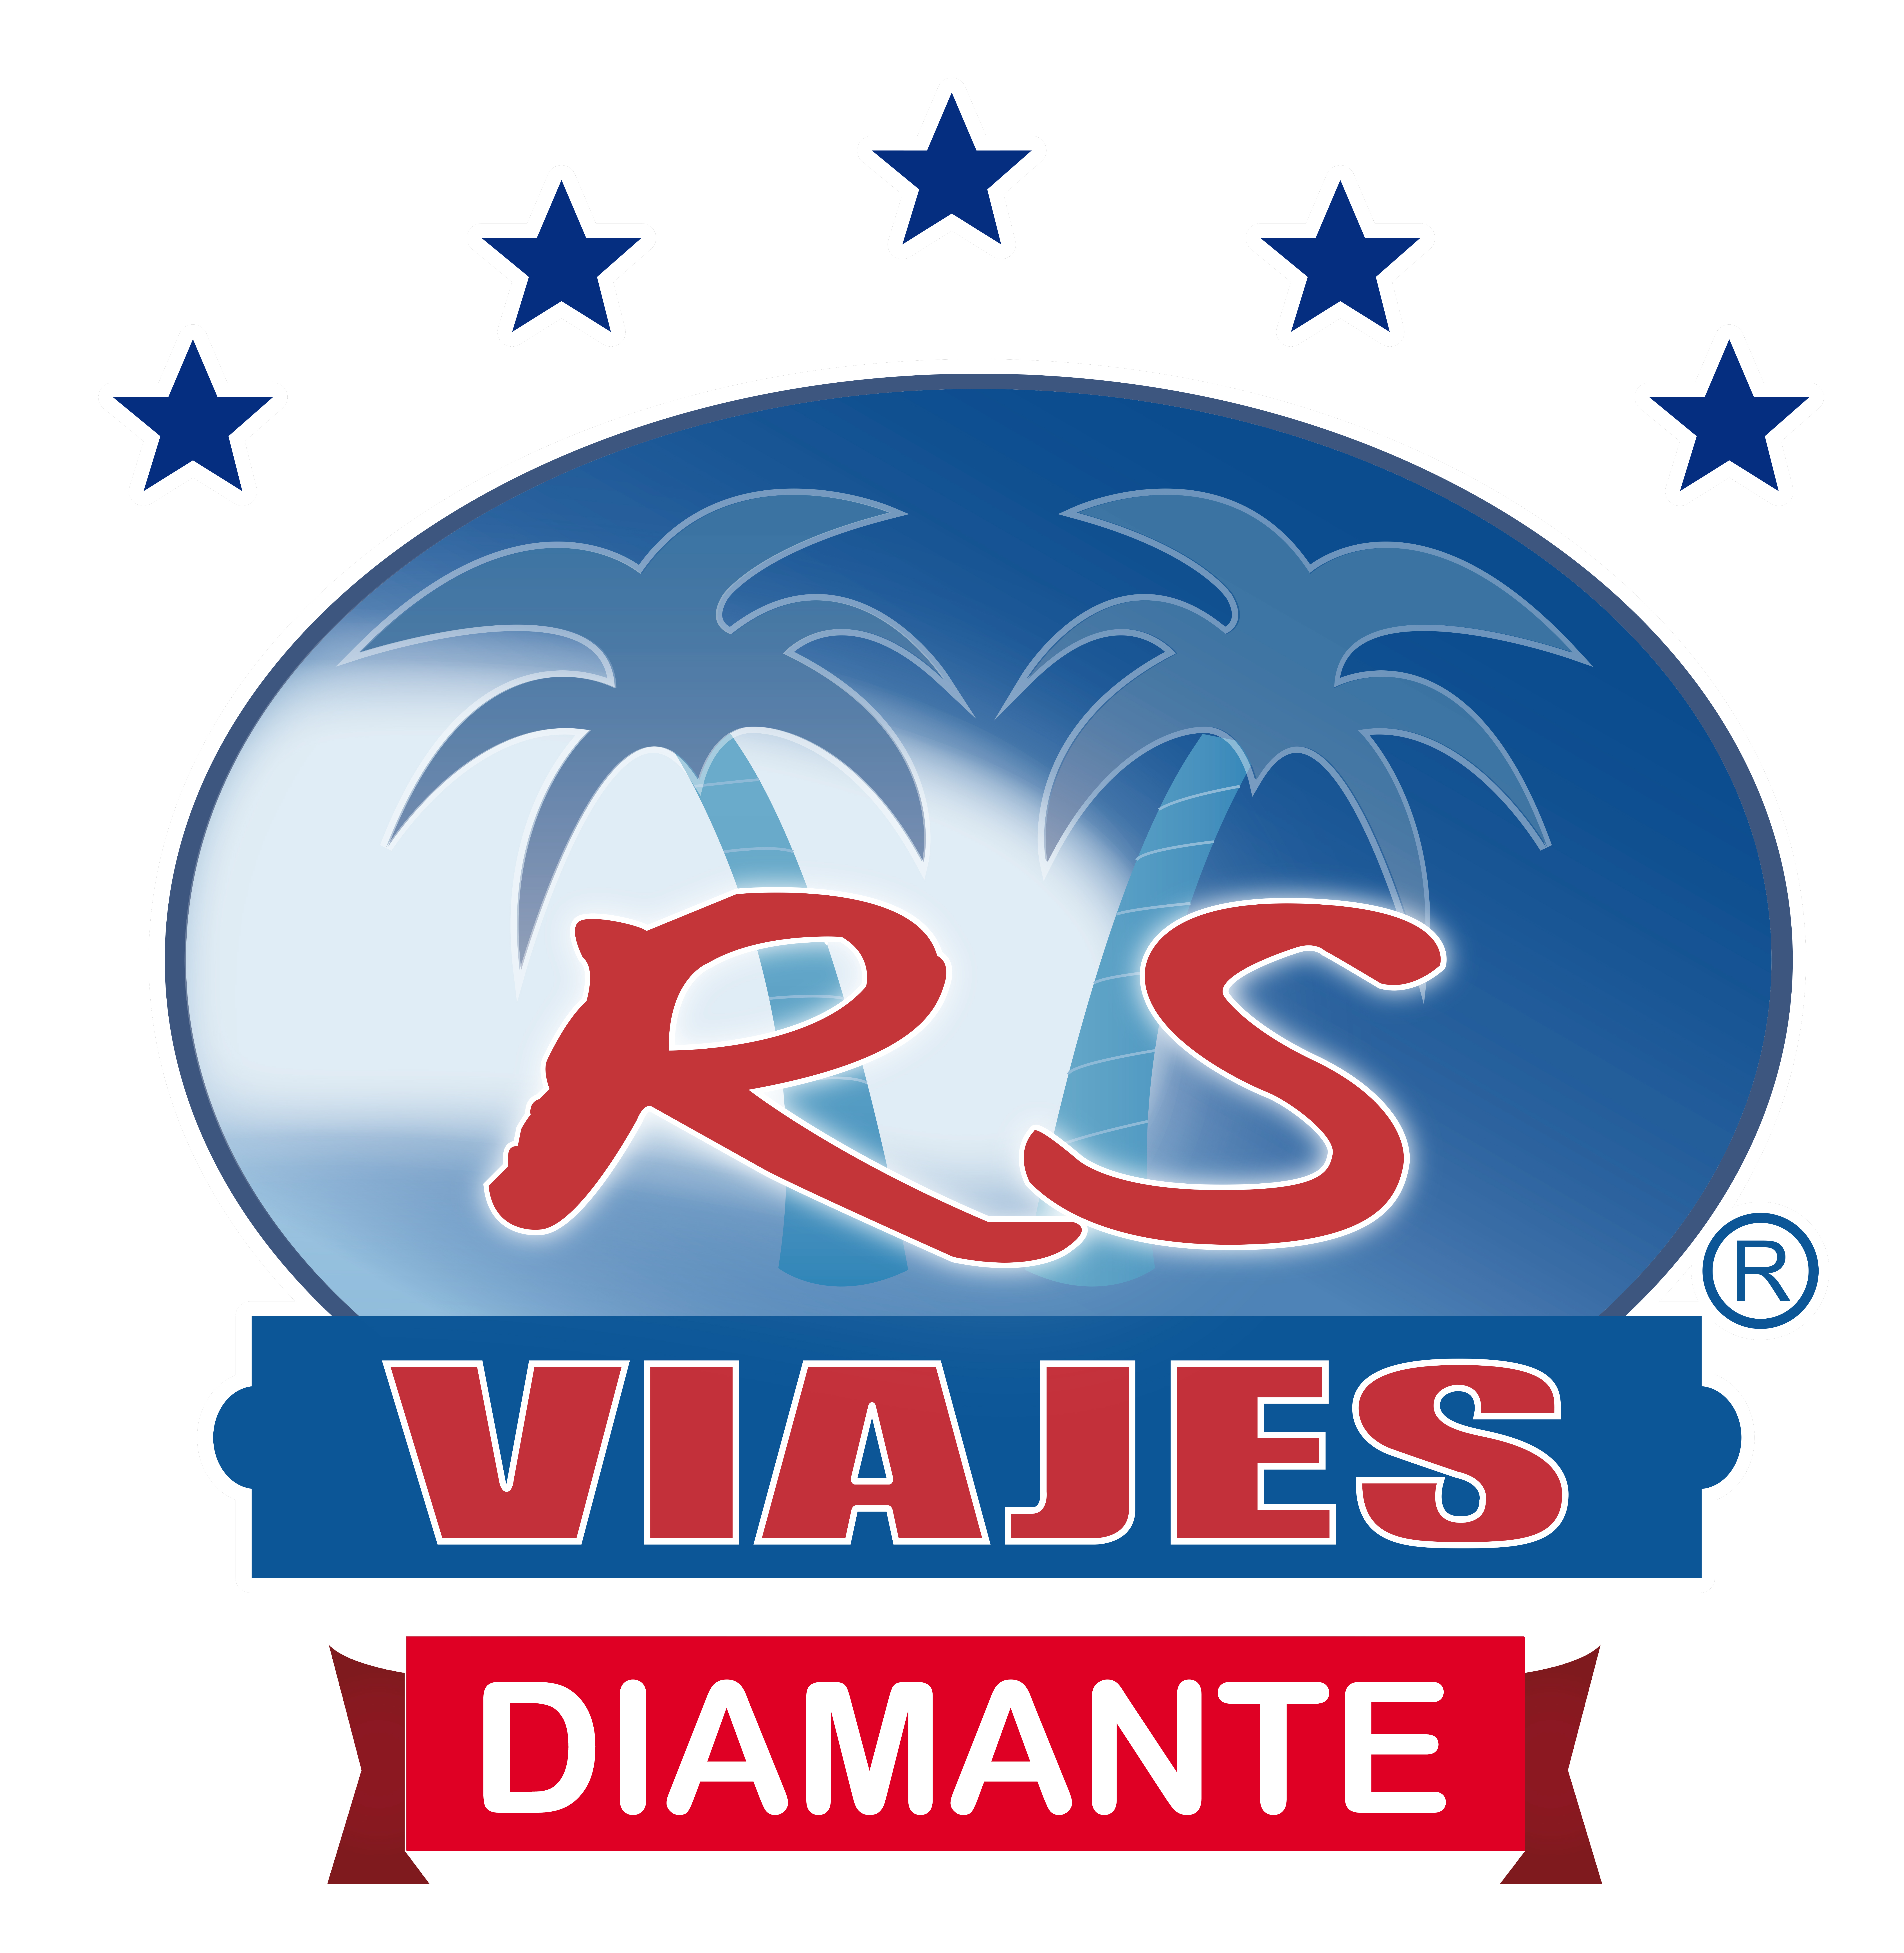 RS Viajes Diamante